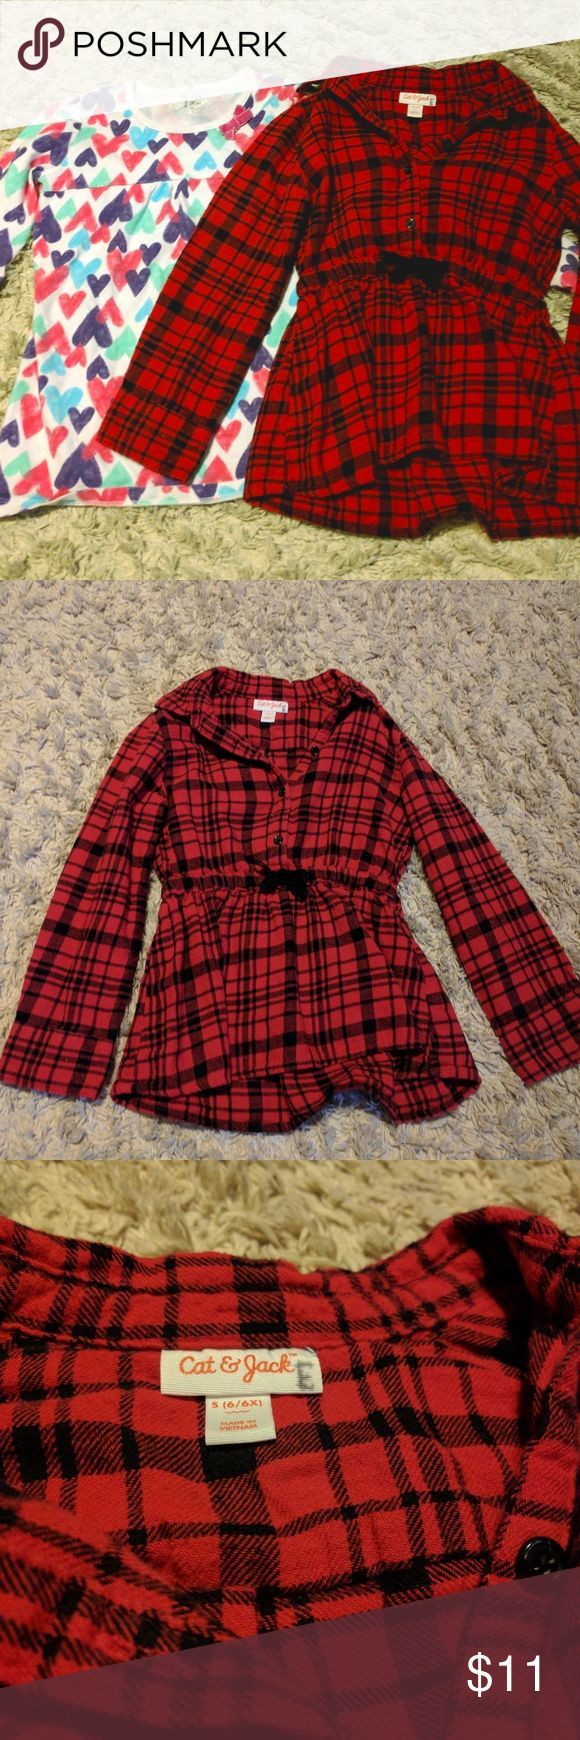 "Girls Long Sleeve - 2 pack! Size 6X Perfect for fall/winter. Two girls long sleeve shirts. Both shirts are in great condition. No stains, tears, etc.   Plaid shirt cinches in at the waist and has a cute velvet bow.   Heart print shirt has a pink bow at the neckline.   NOTE: Both shirts have an ""E"" on them specifying which household they belonged to. It does not show on the outside of the shirt. Cat and Jack Shirts & Tops Tees - Long Sleeve"